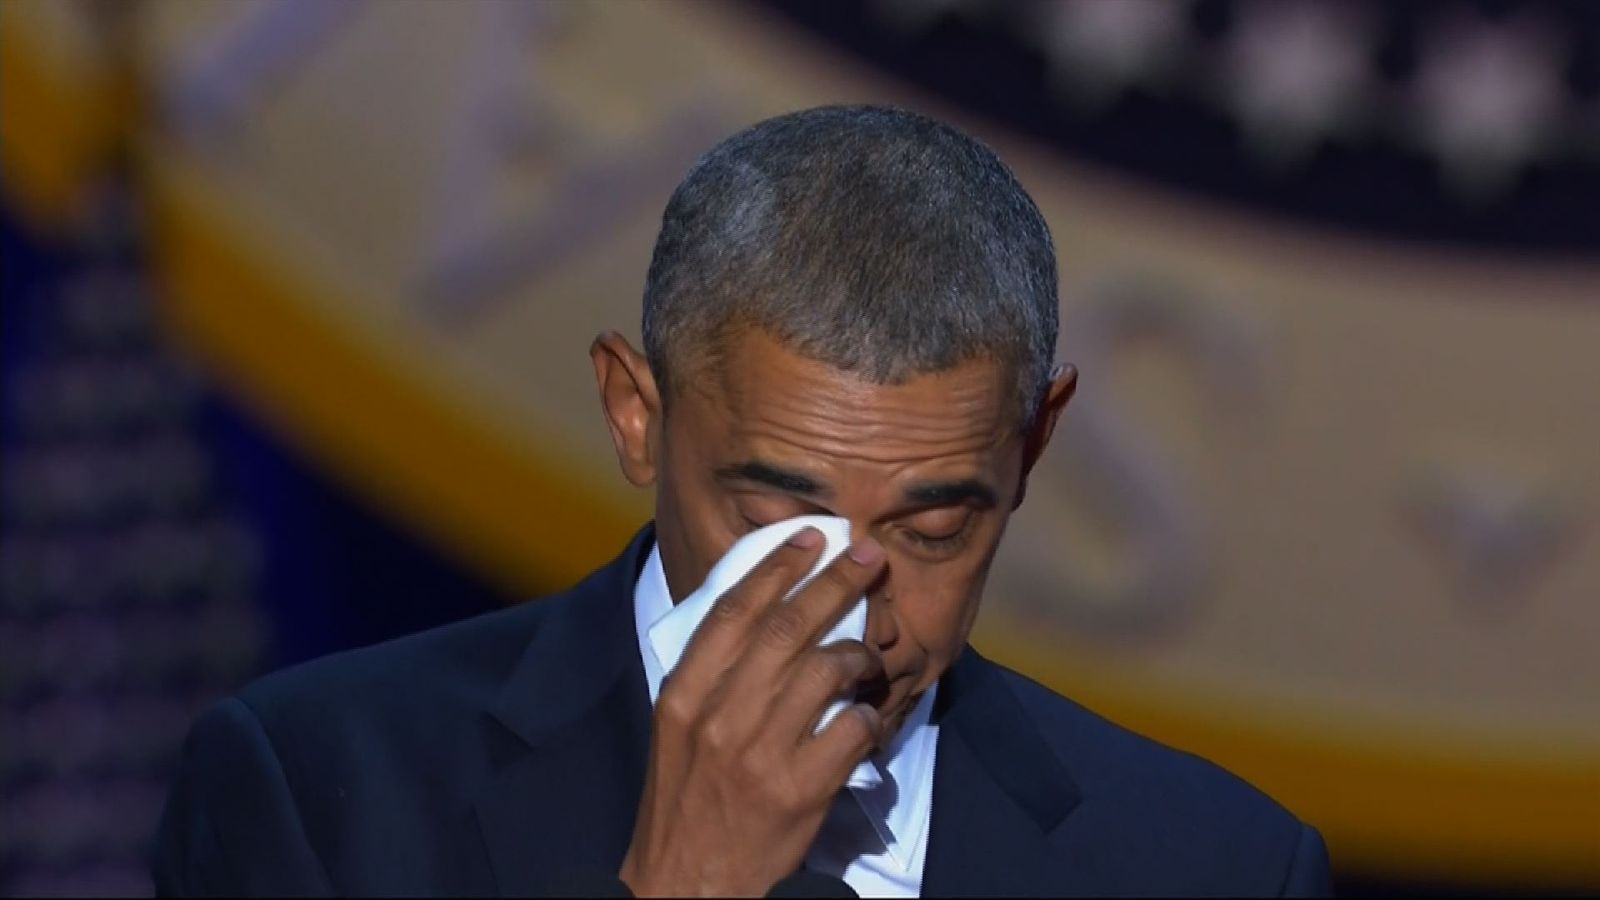 At his farewell address, President Obama pays a tearful tribute to his wife, Michelle.